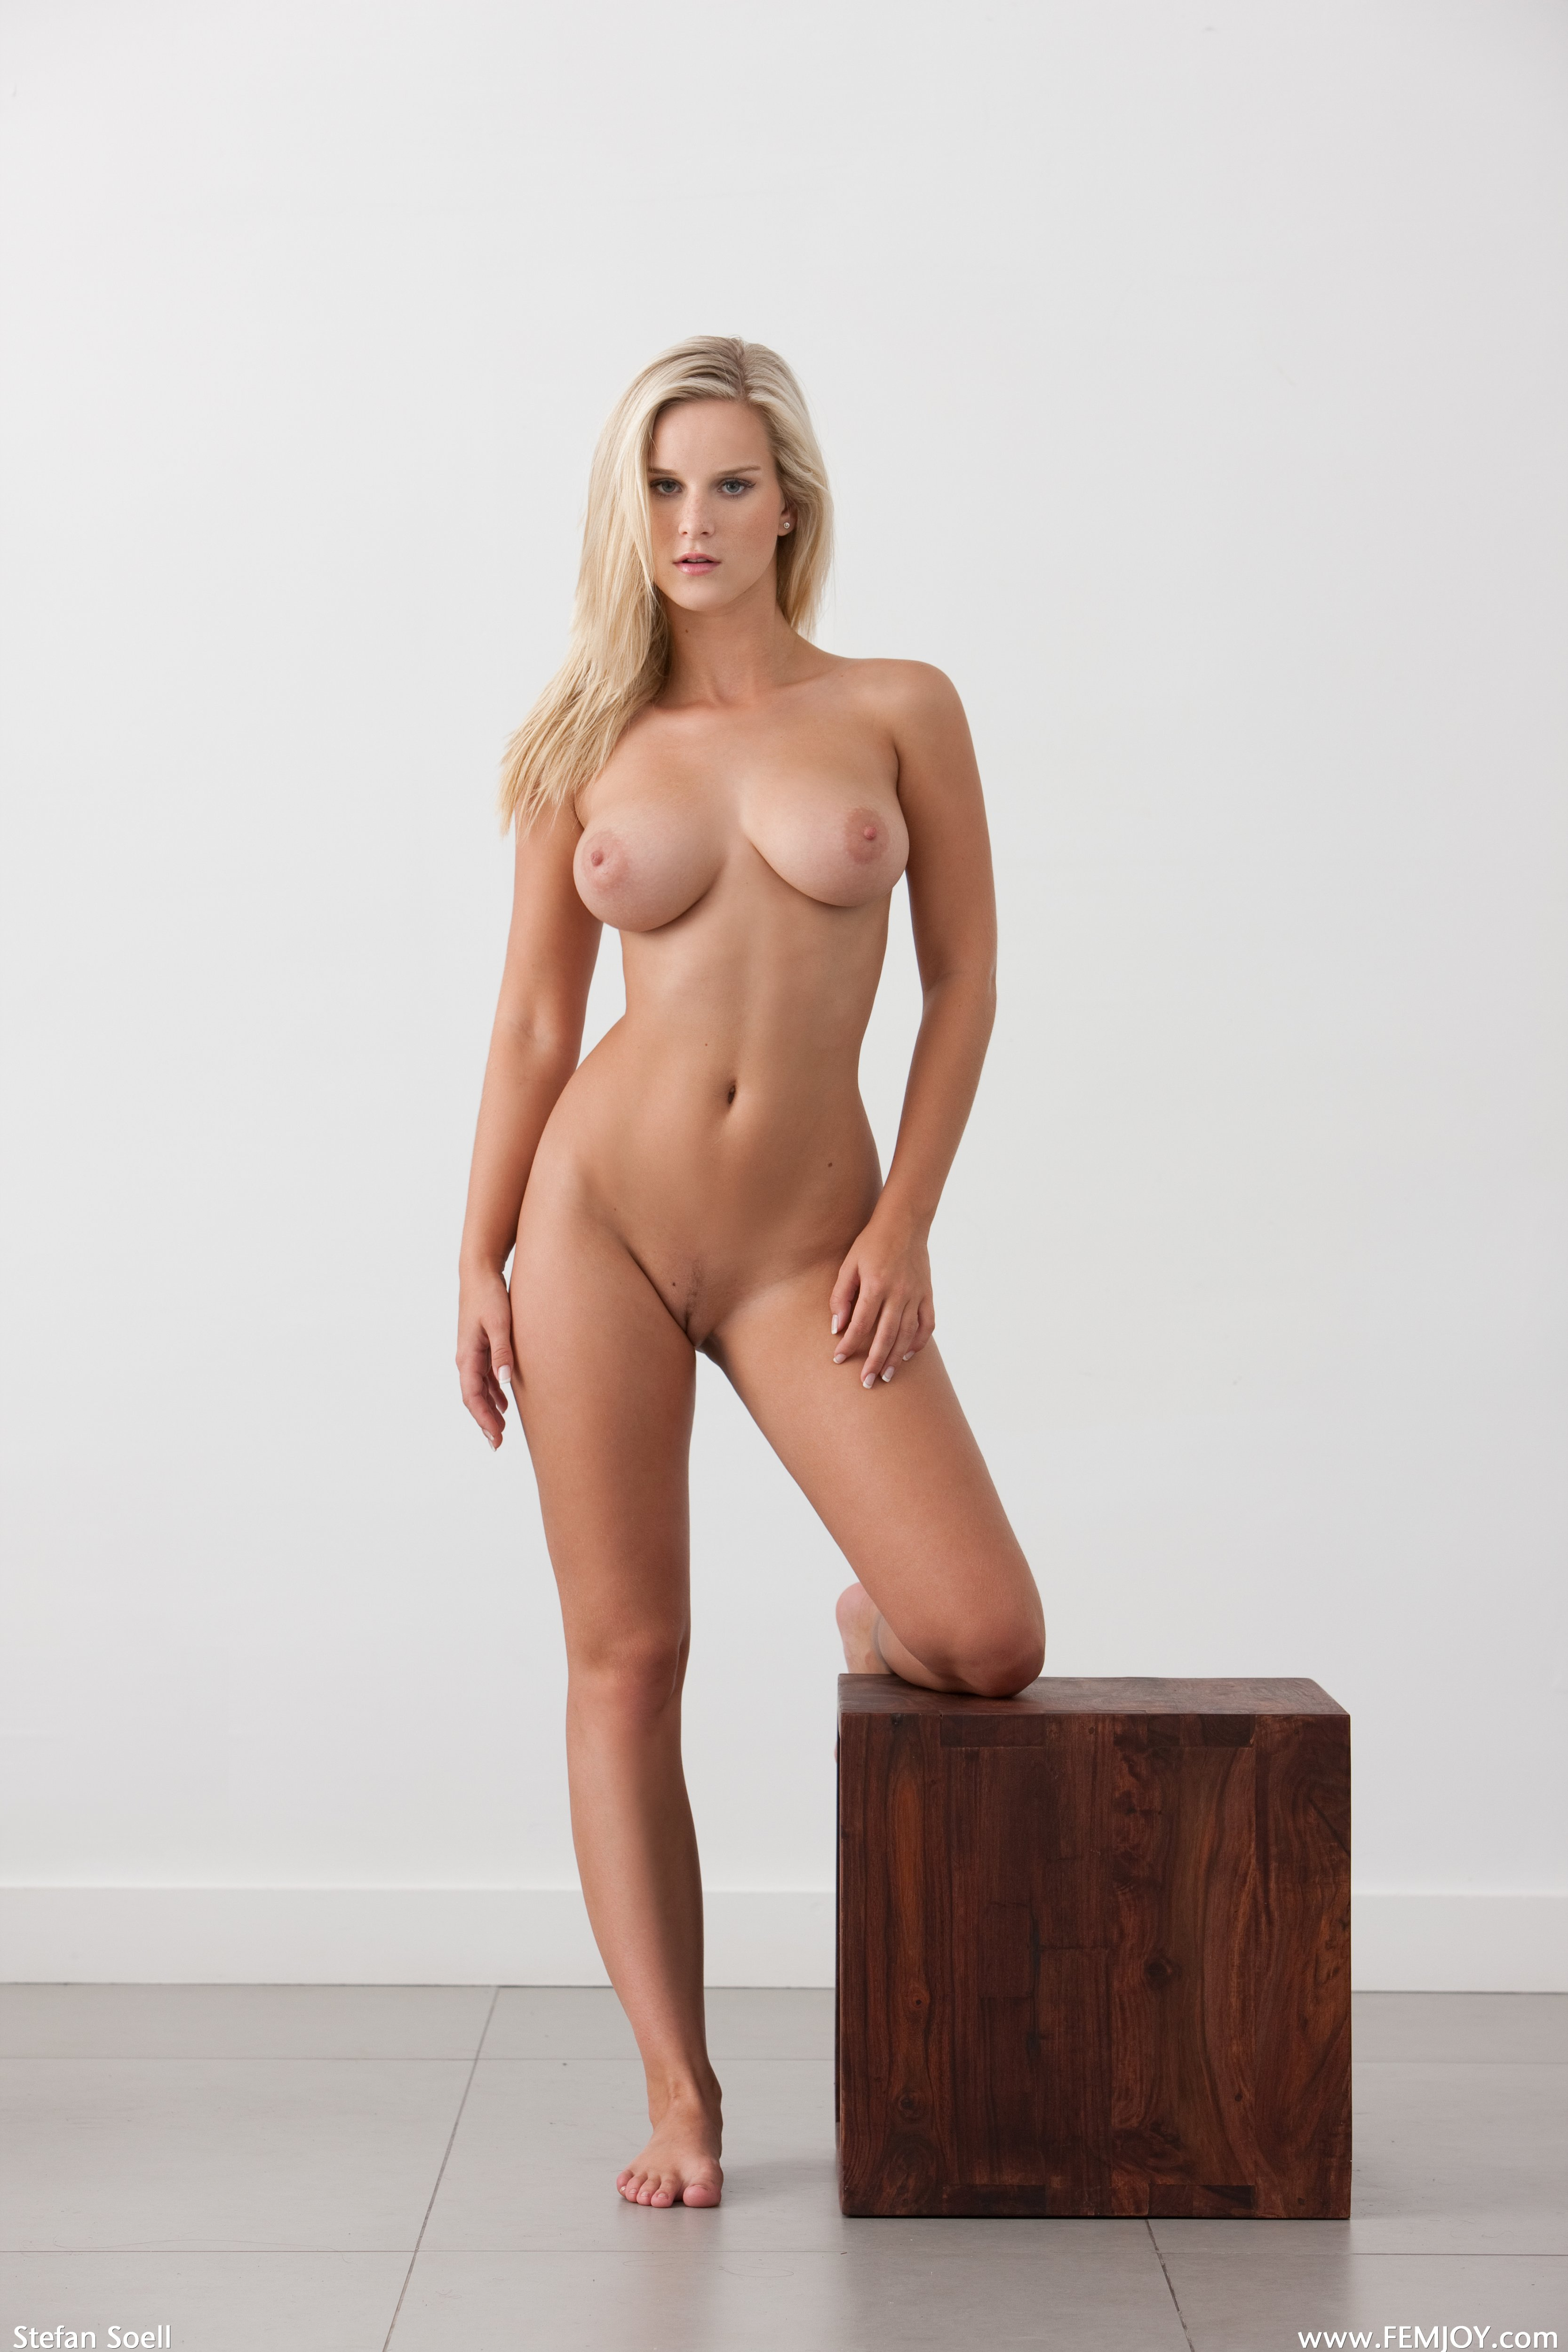 pics of really old nude women